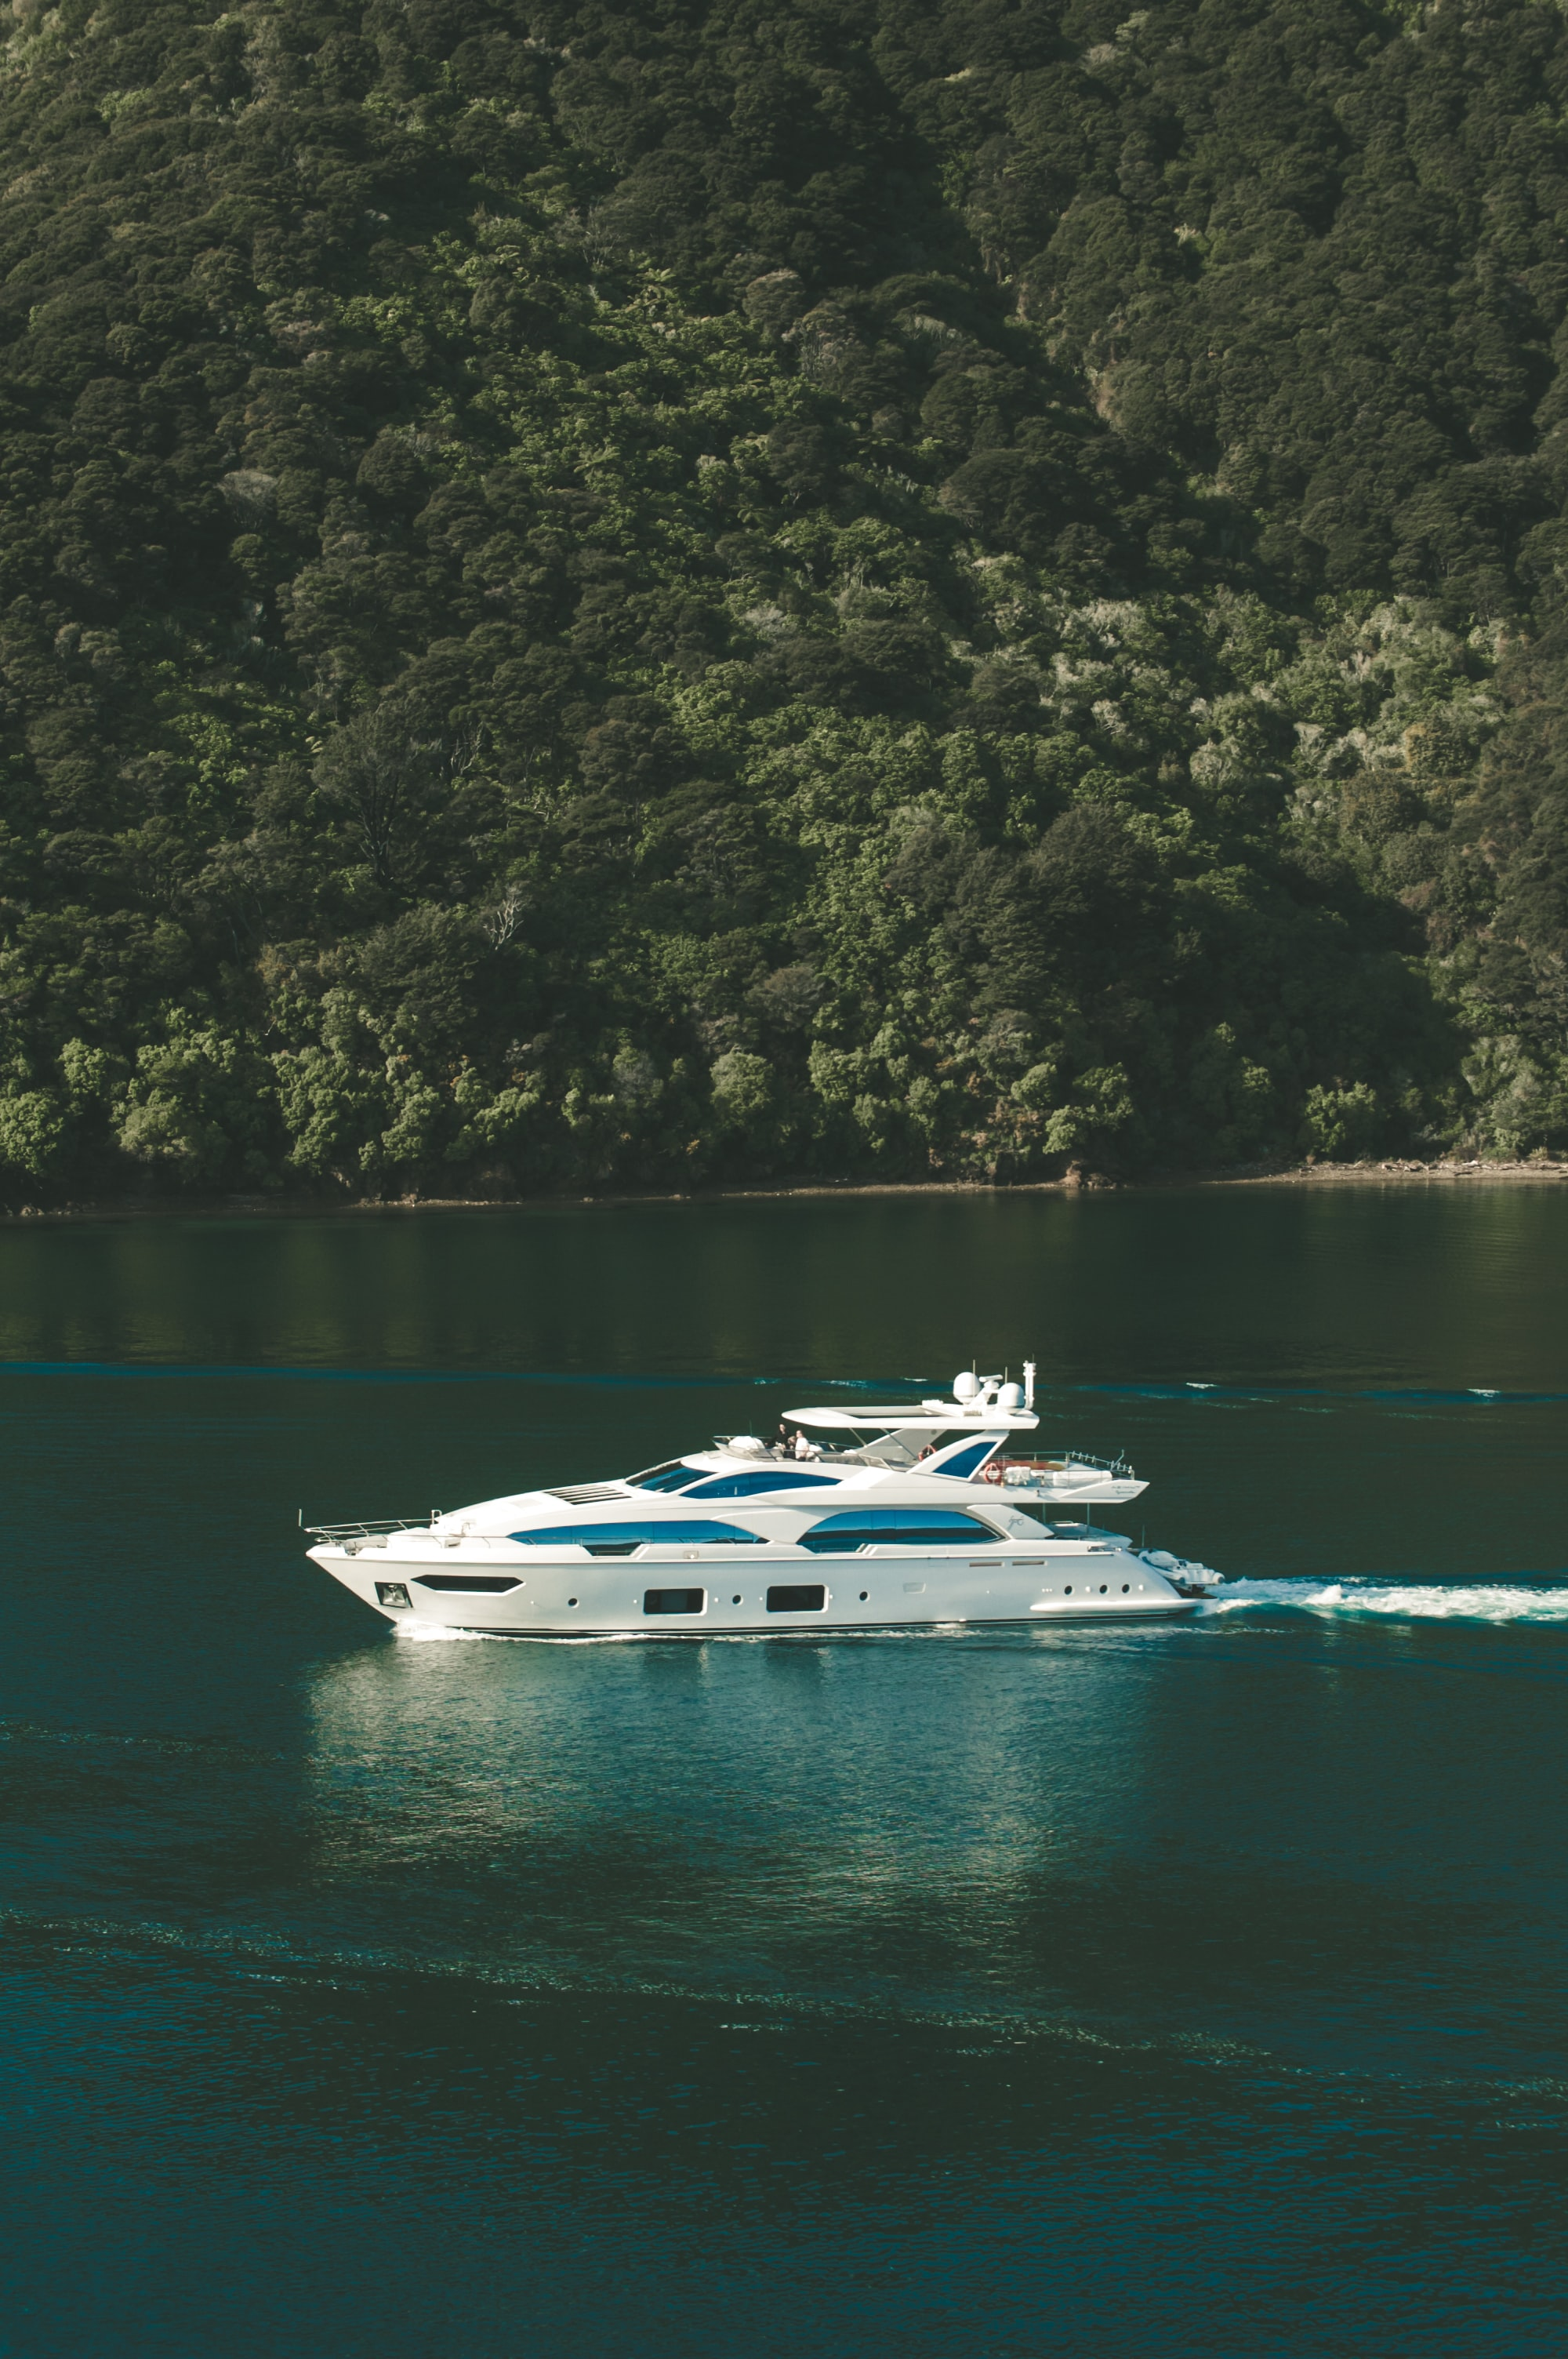 birds eye photography of yacht on body of water